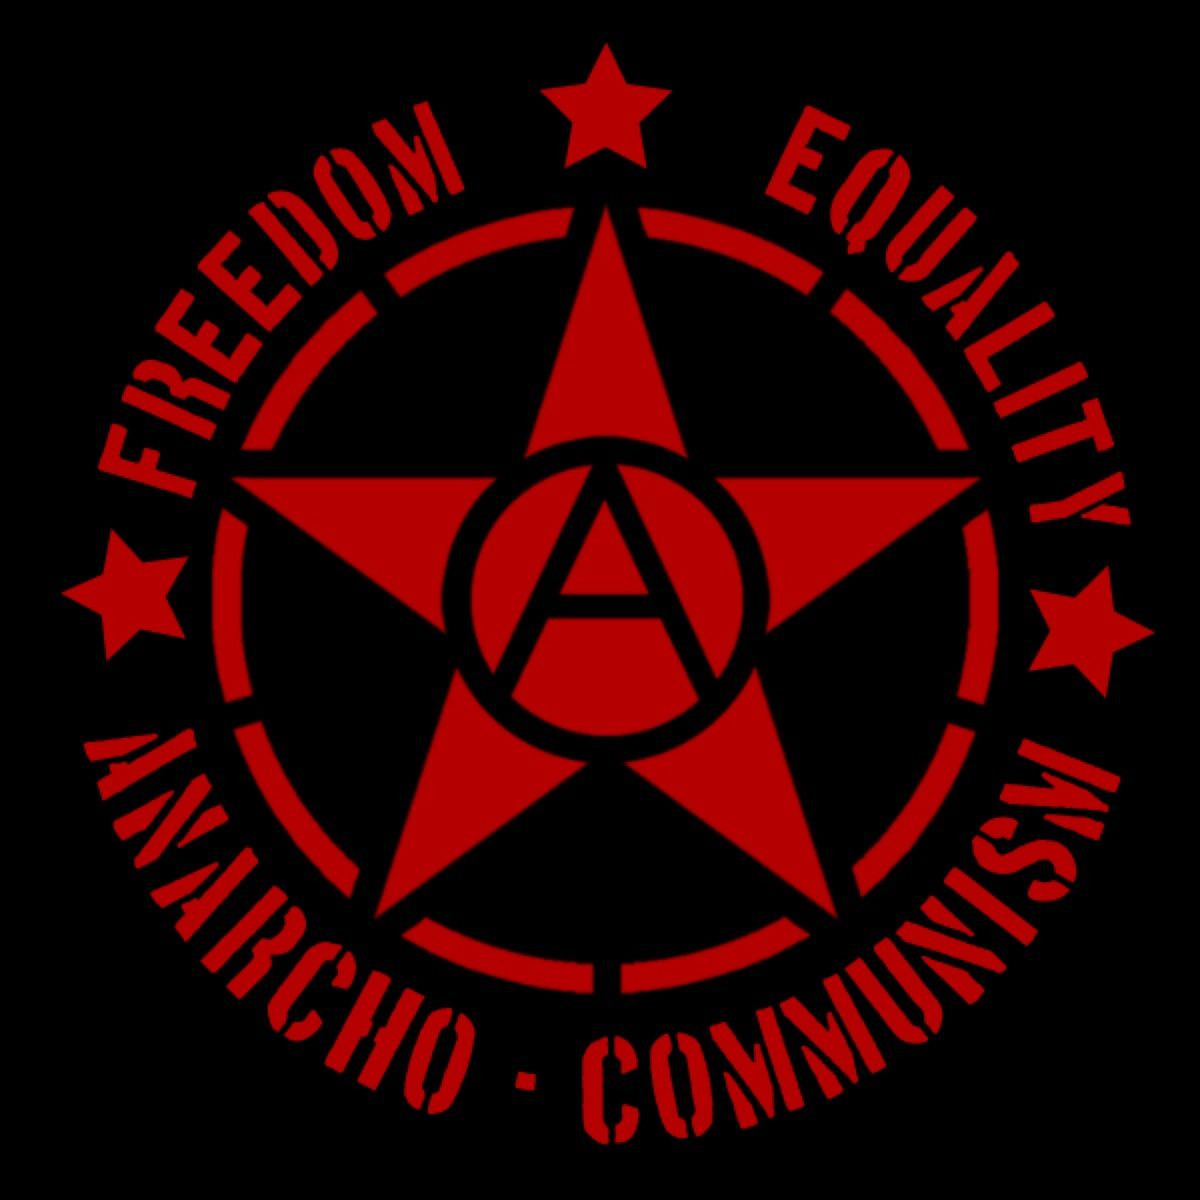 Communist Symbols Tumblr Anarcho Communism In 2018 Pinterest